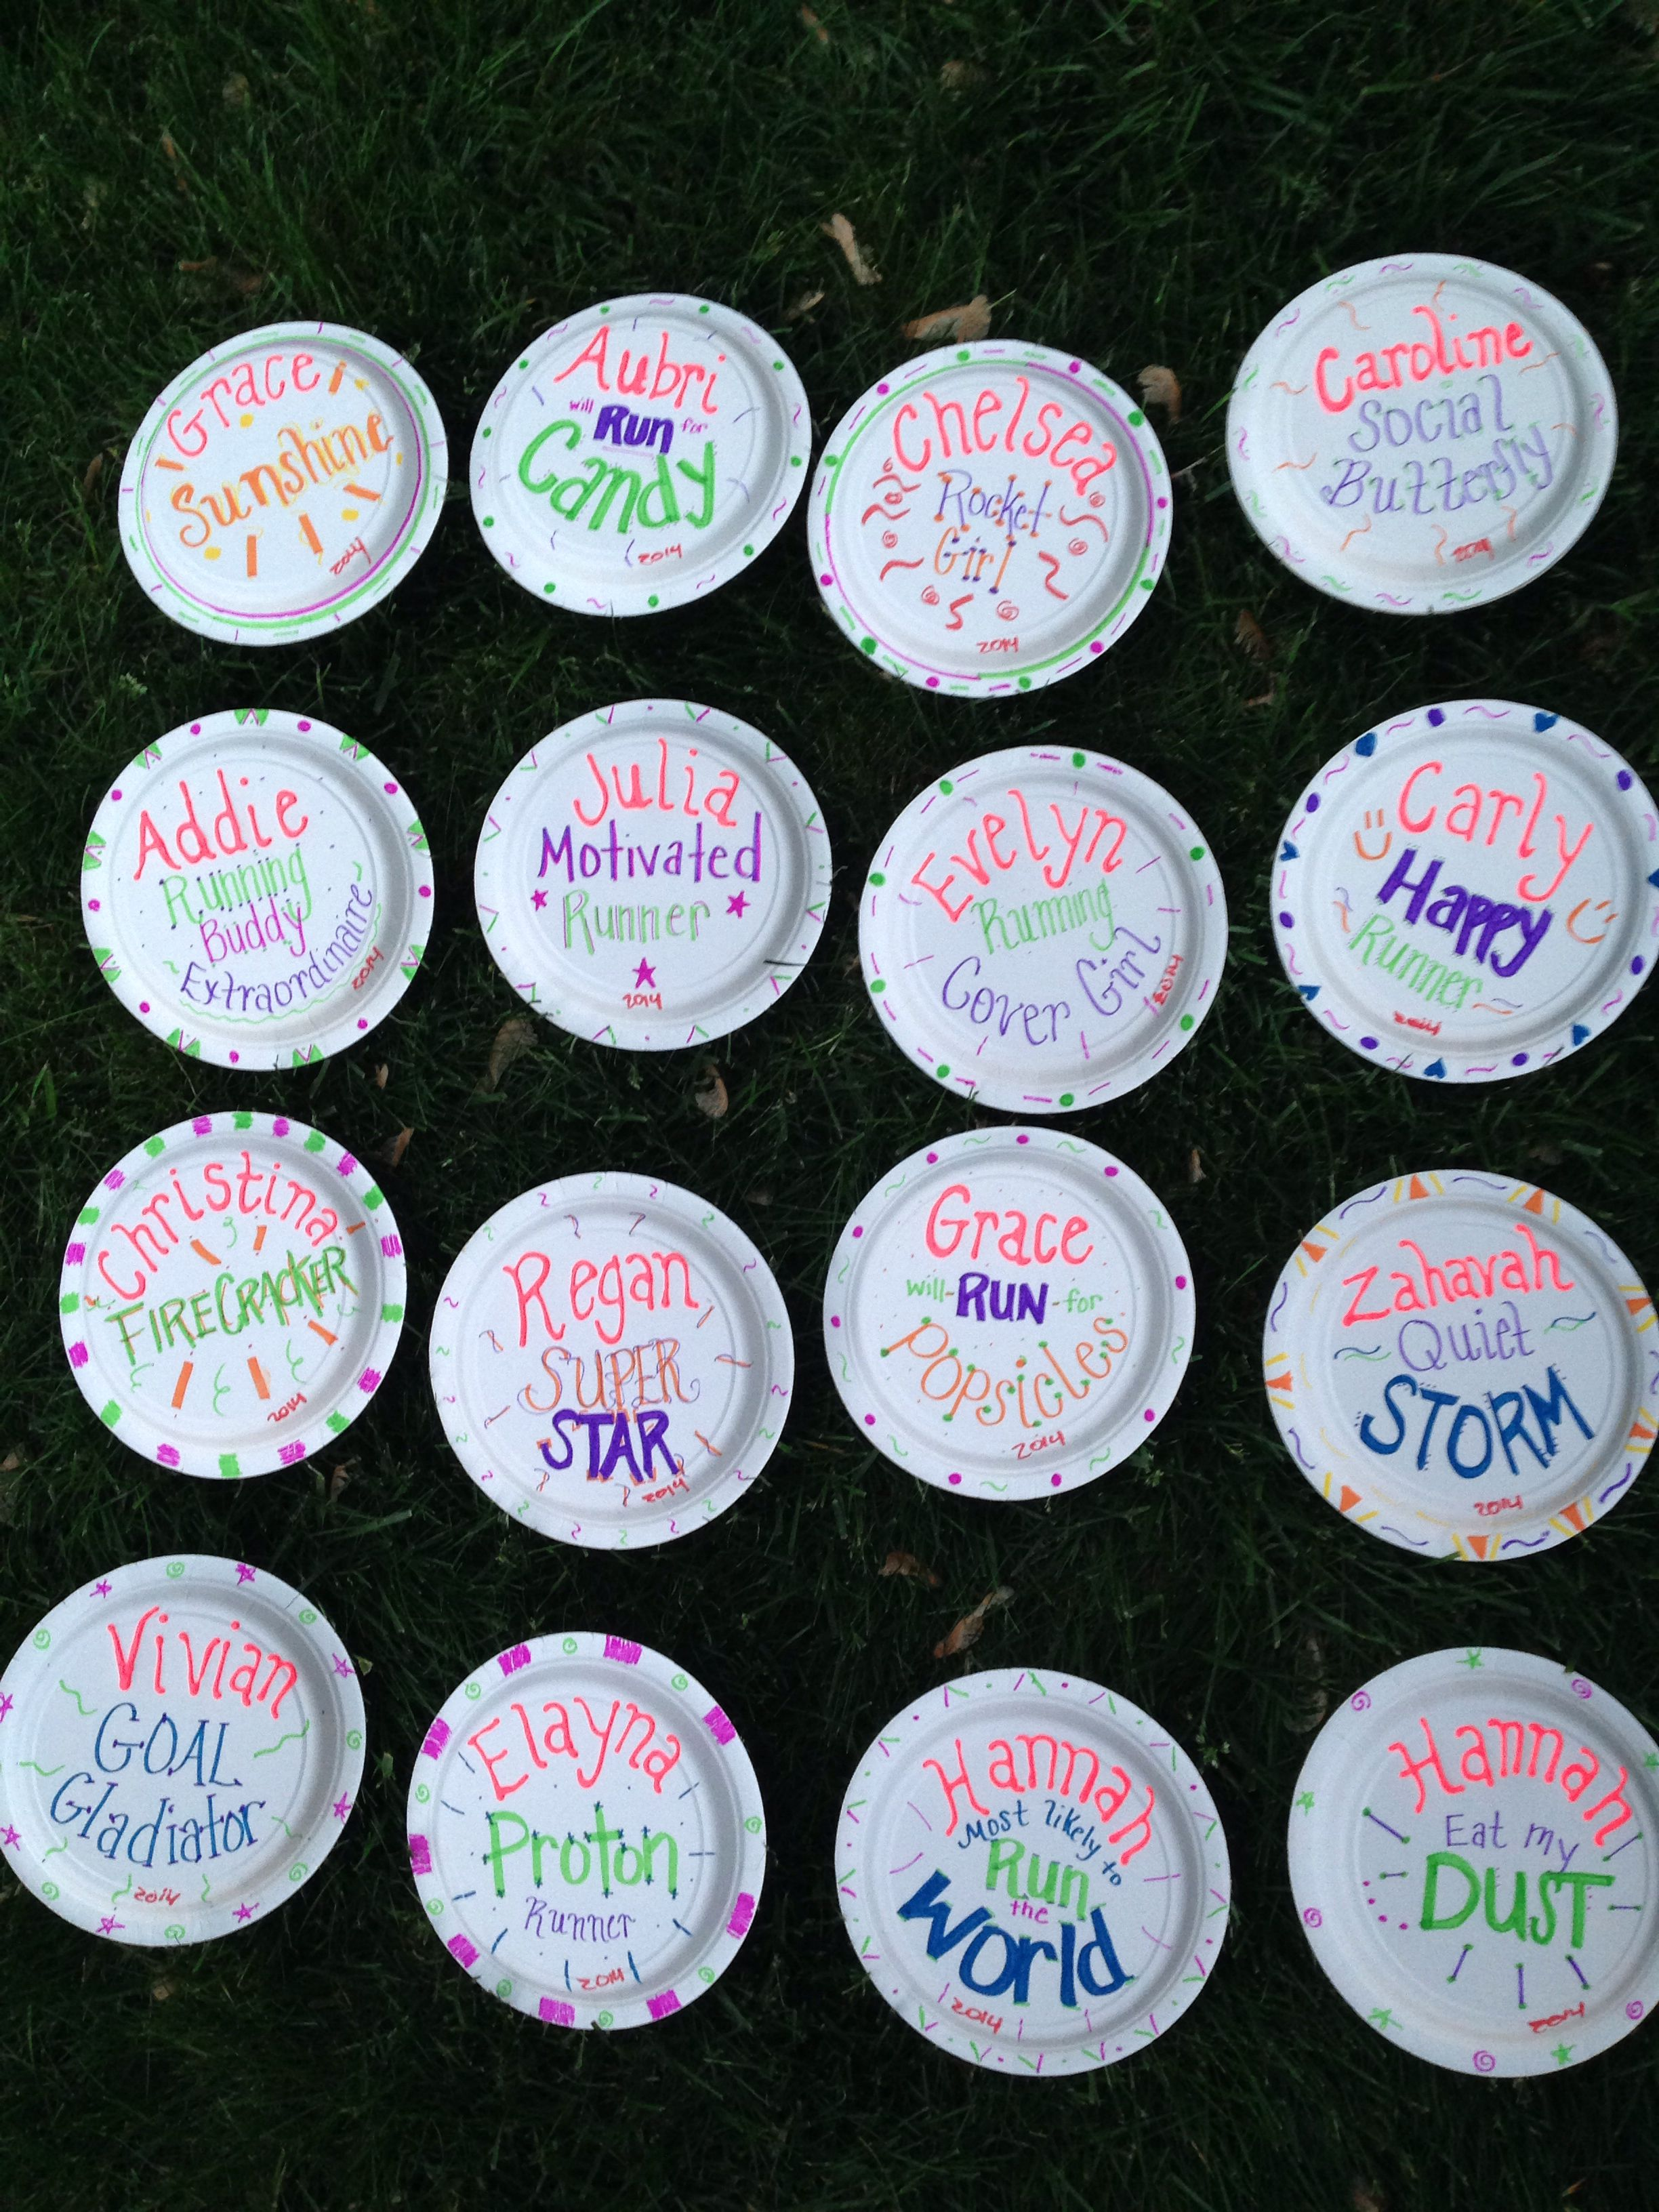 Gotr paper plate awards girls on the run pinterest paper plate awards girls and running for Cross country awards ideas